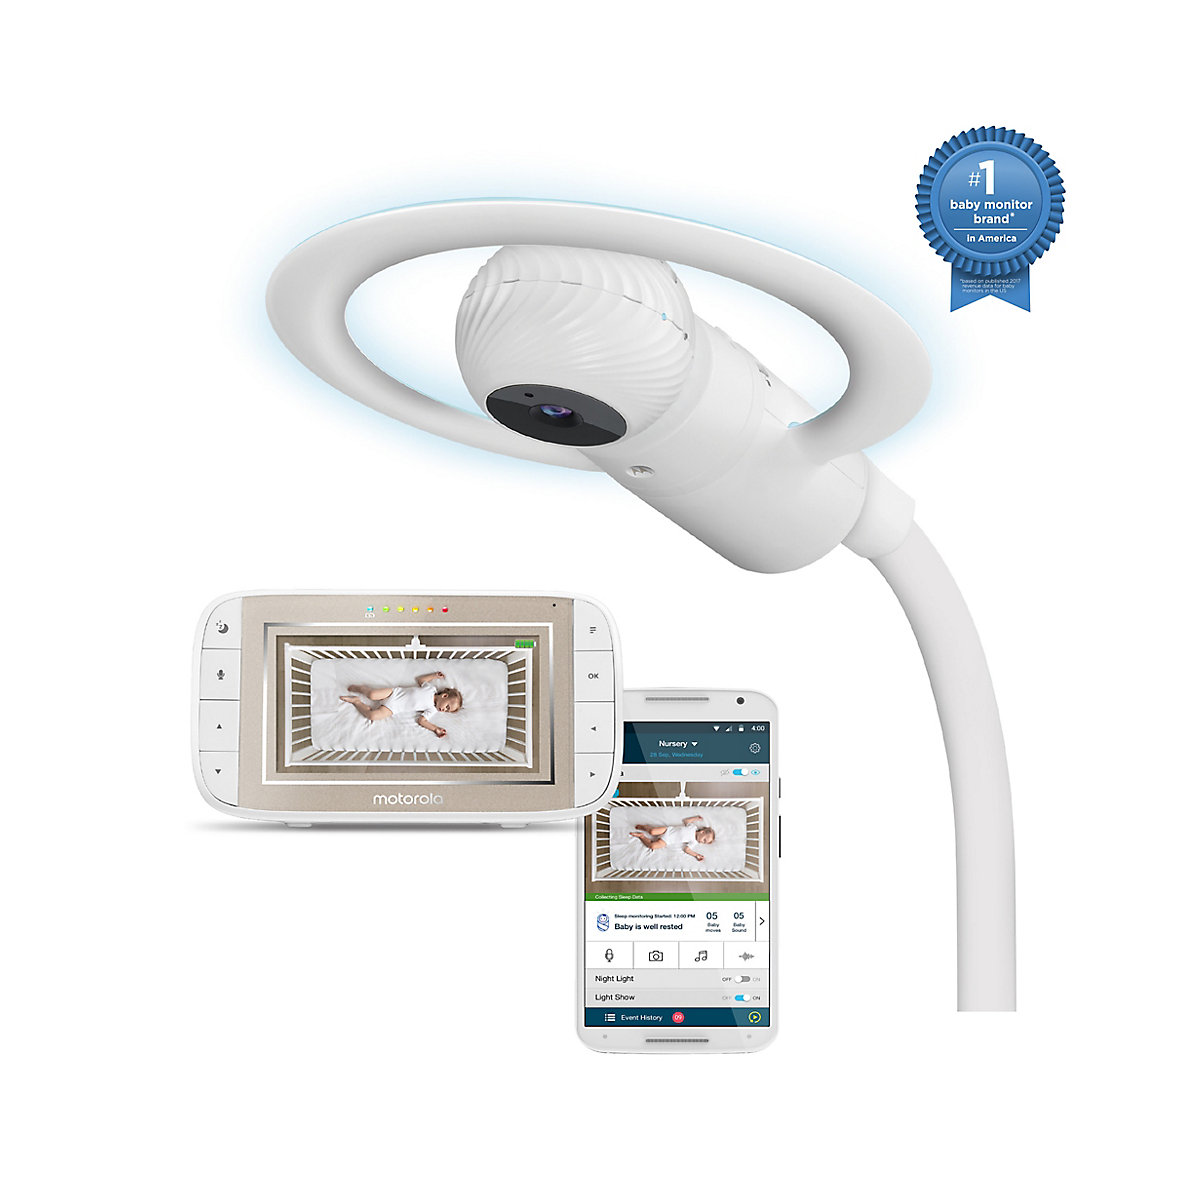 Motorola Halo+ MBP944 smart over-the-cot baby video monitor